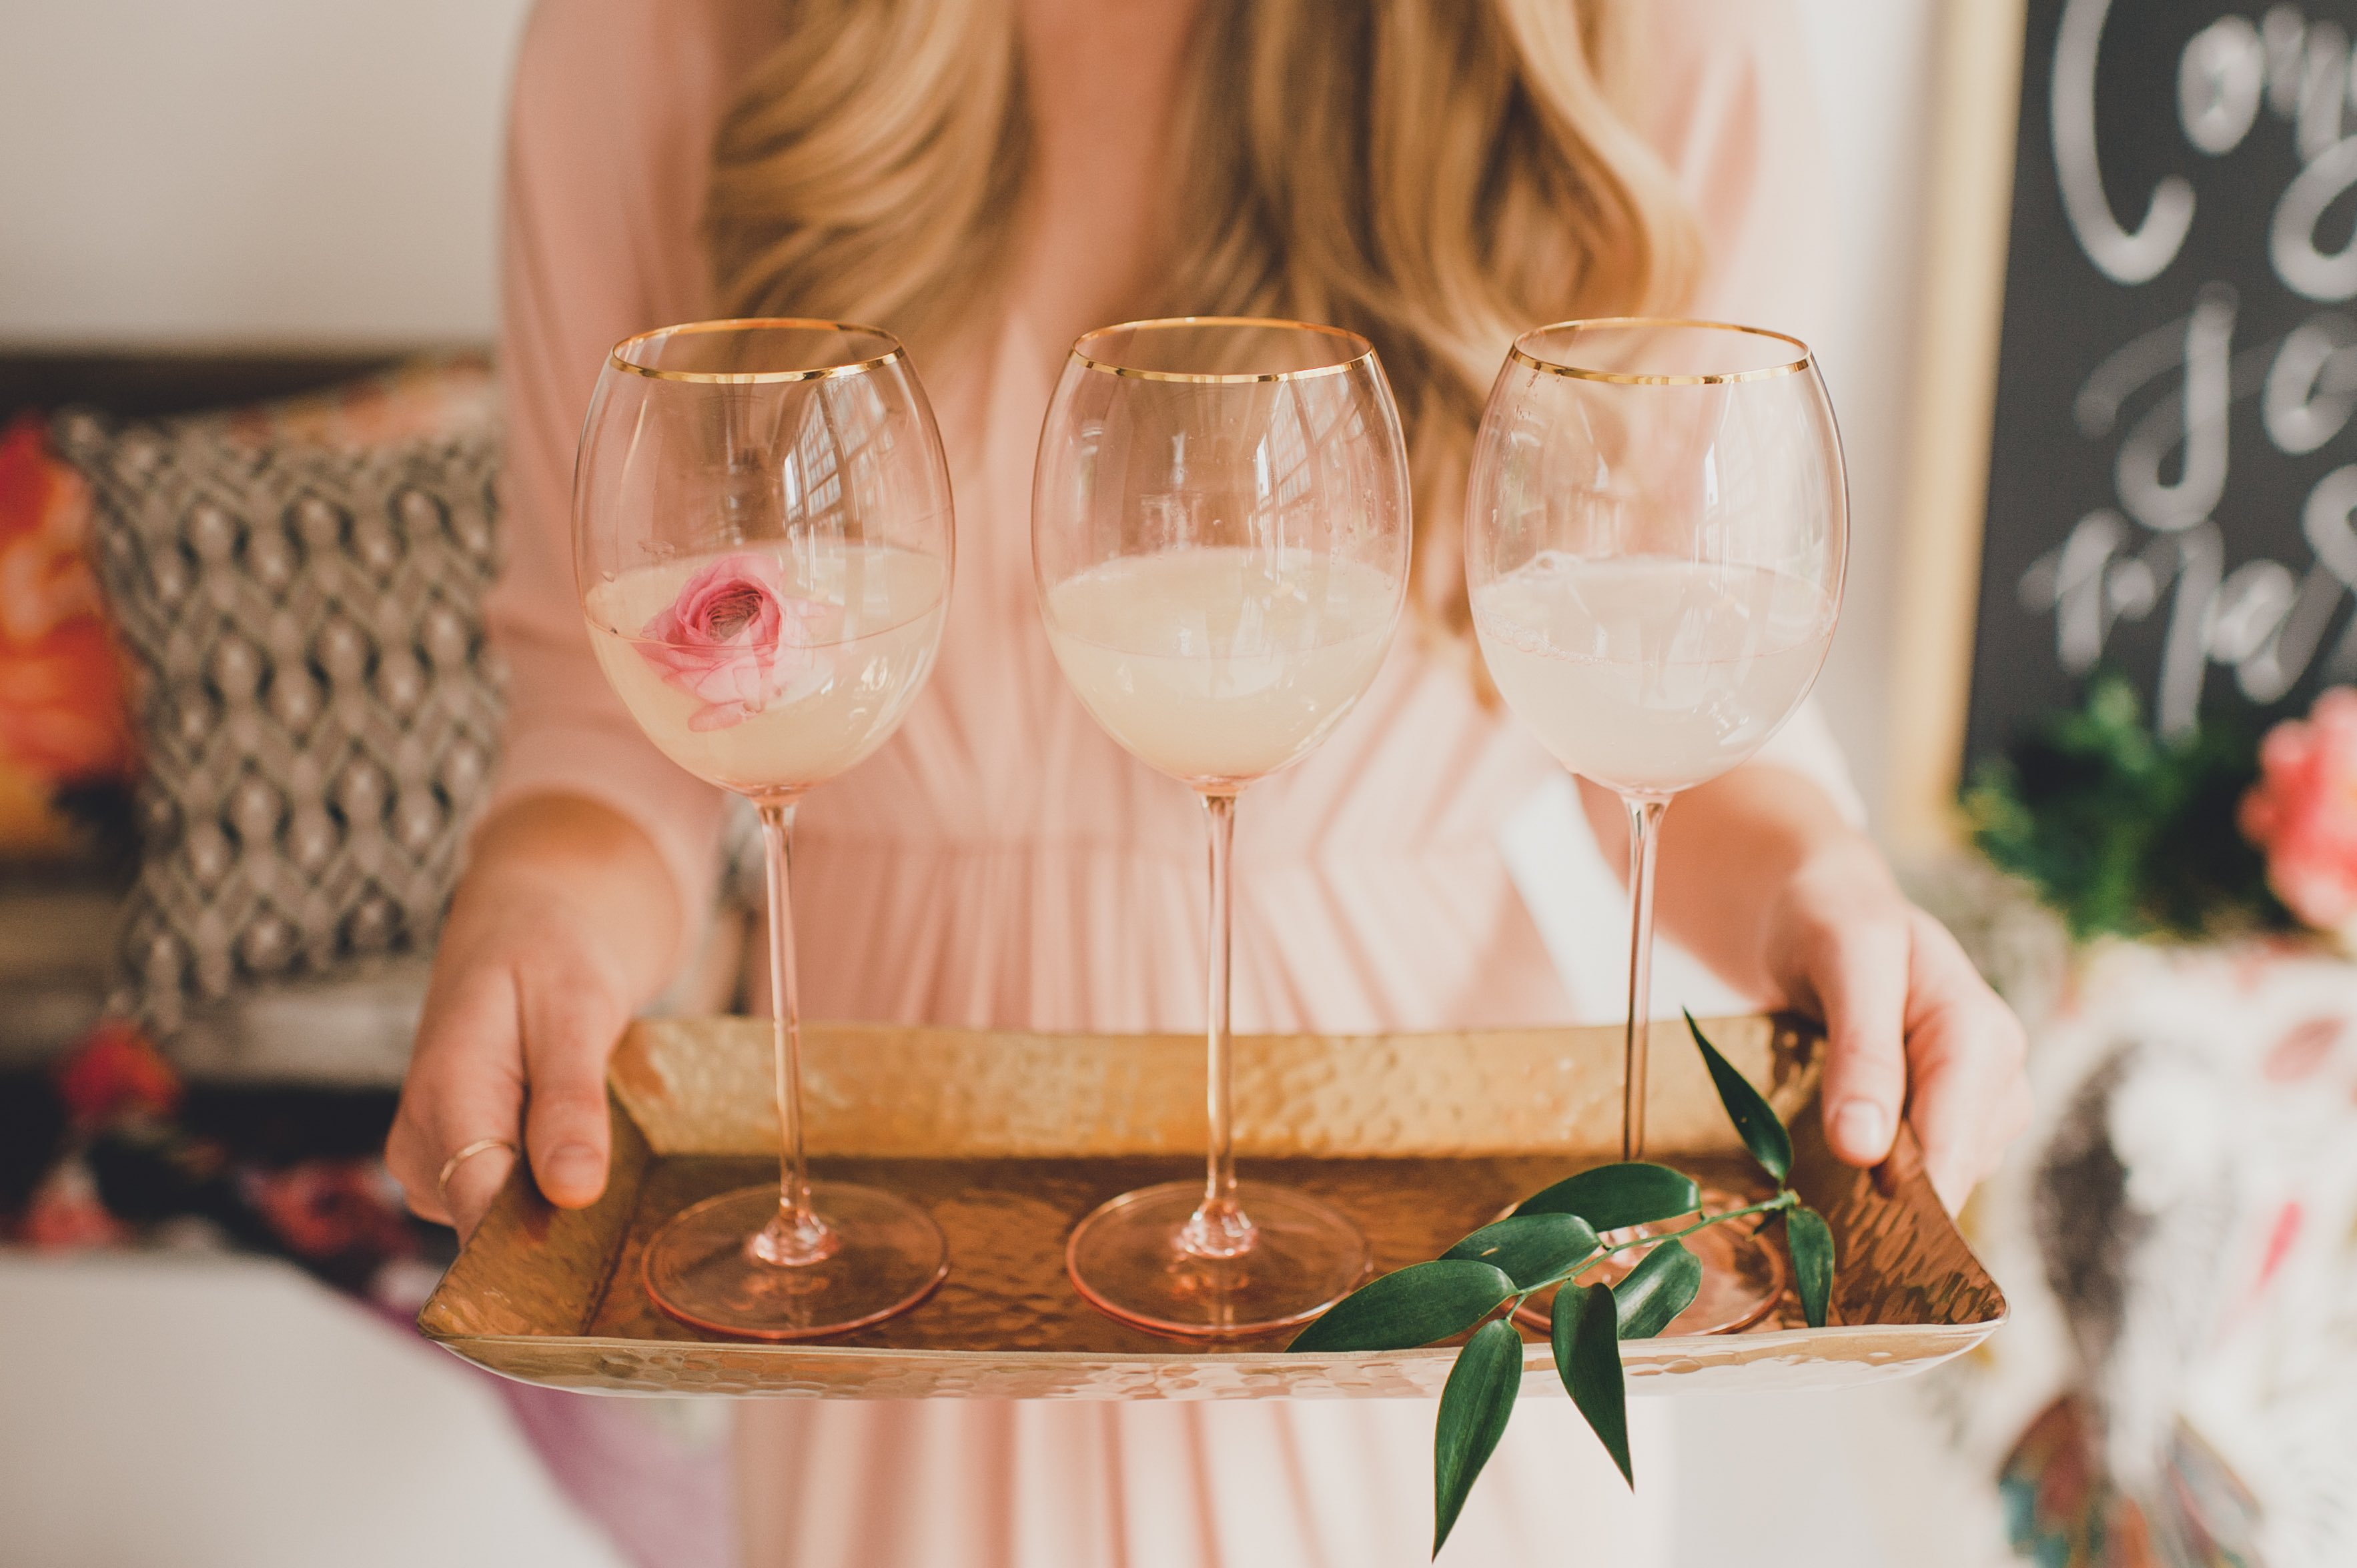 woman holding tray of wine glasses